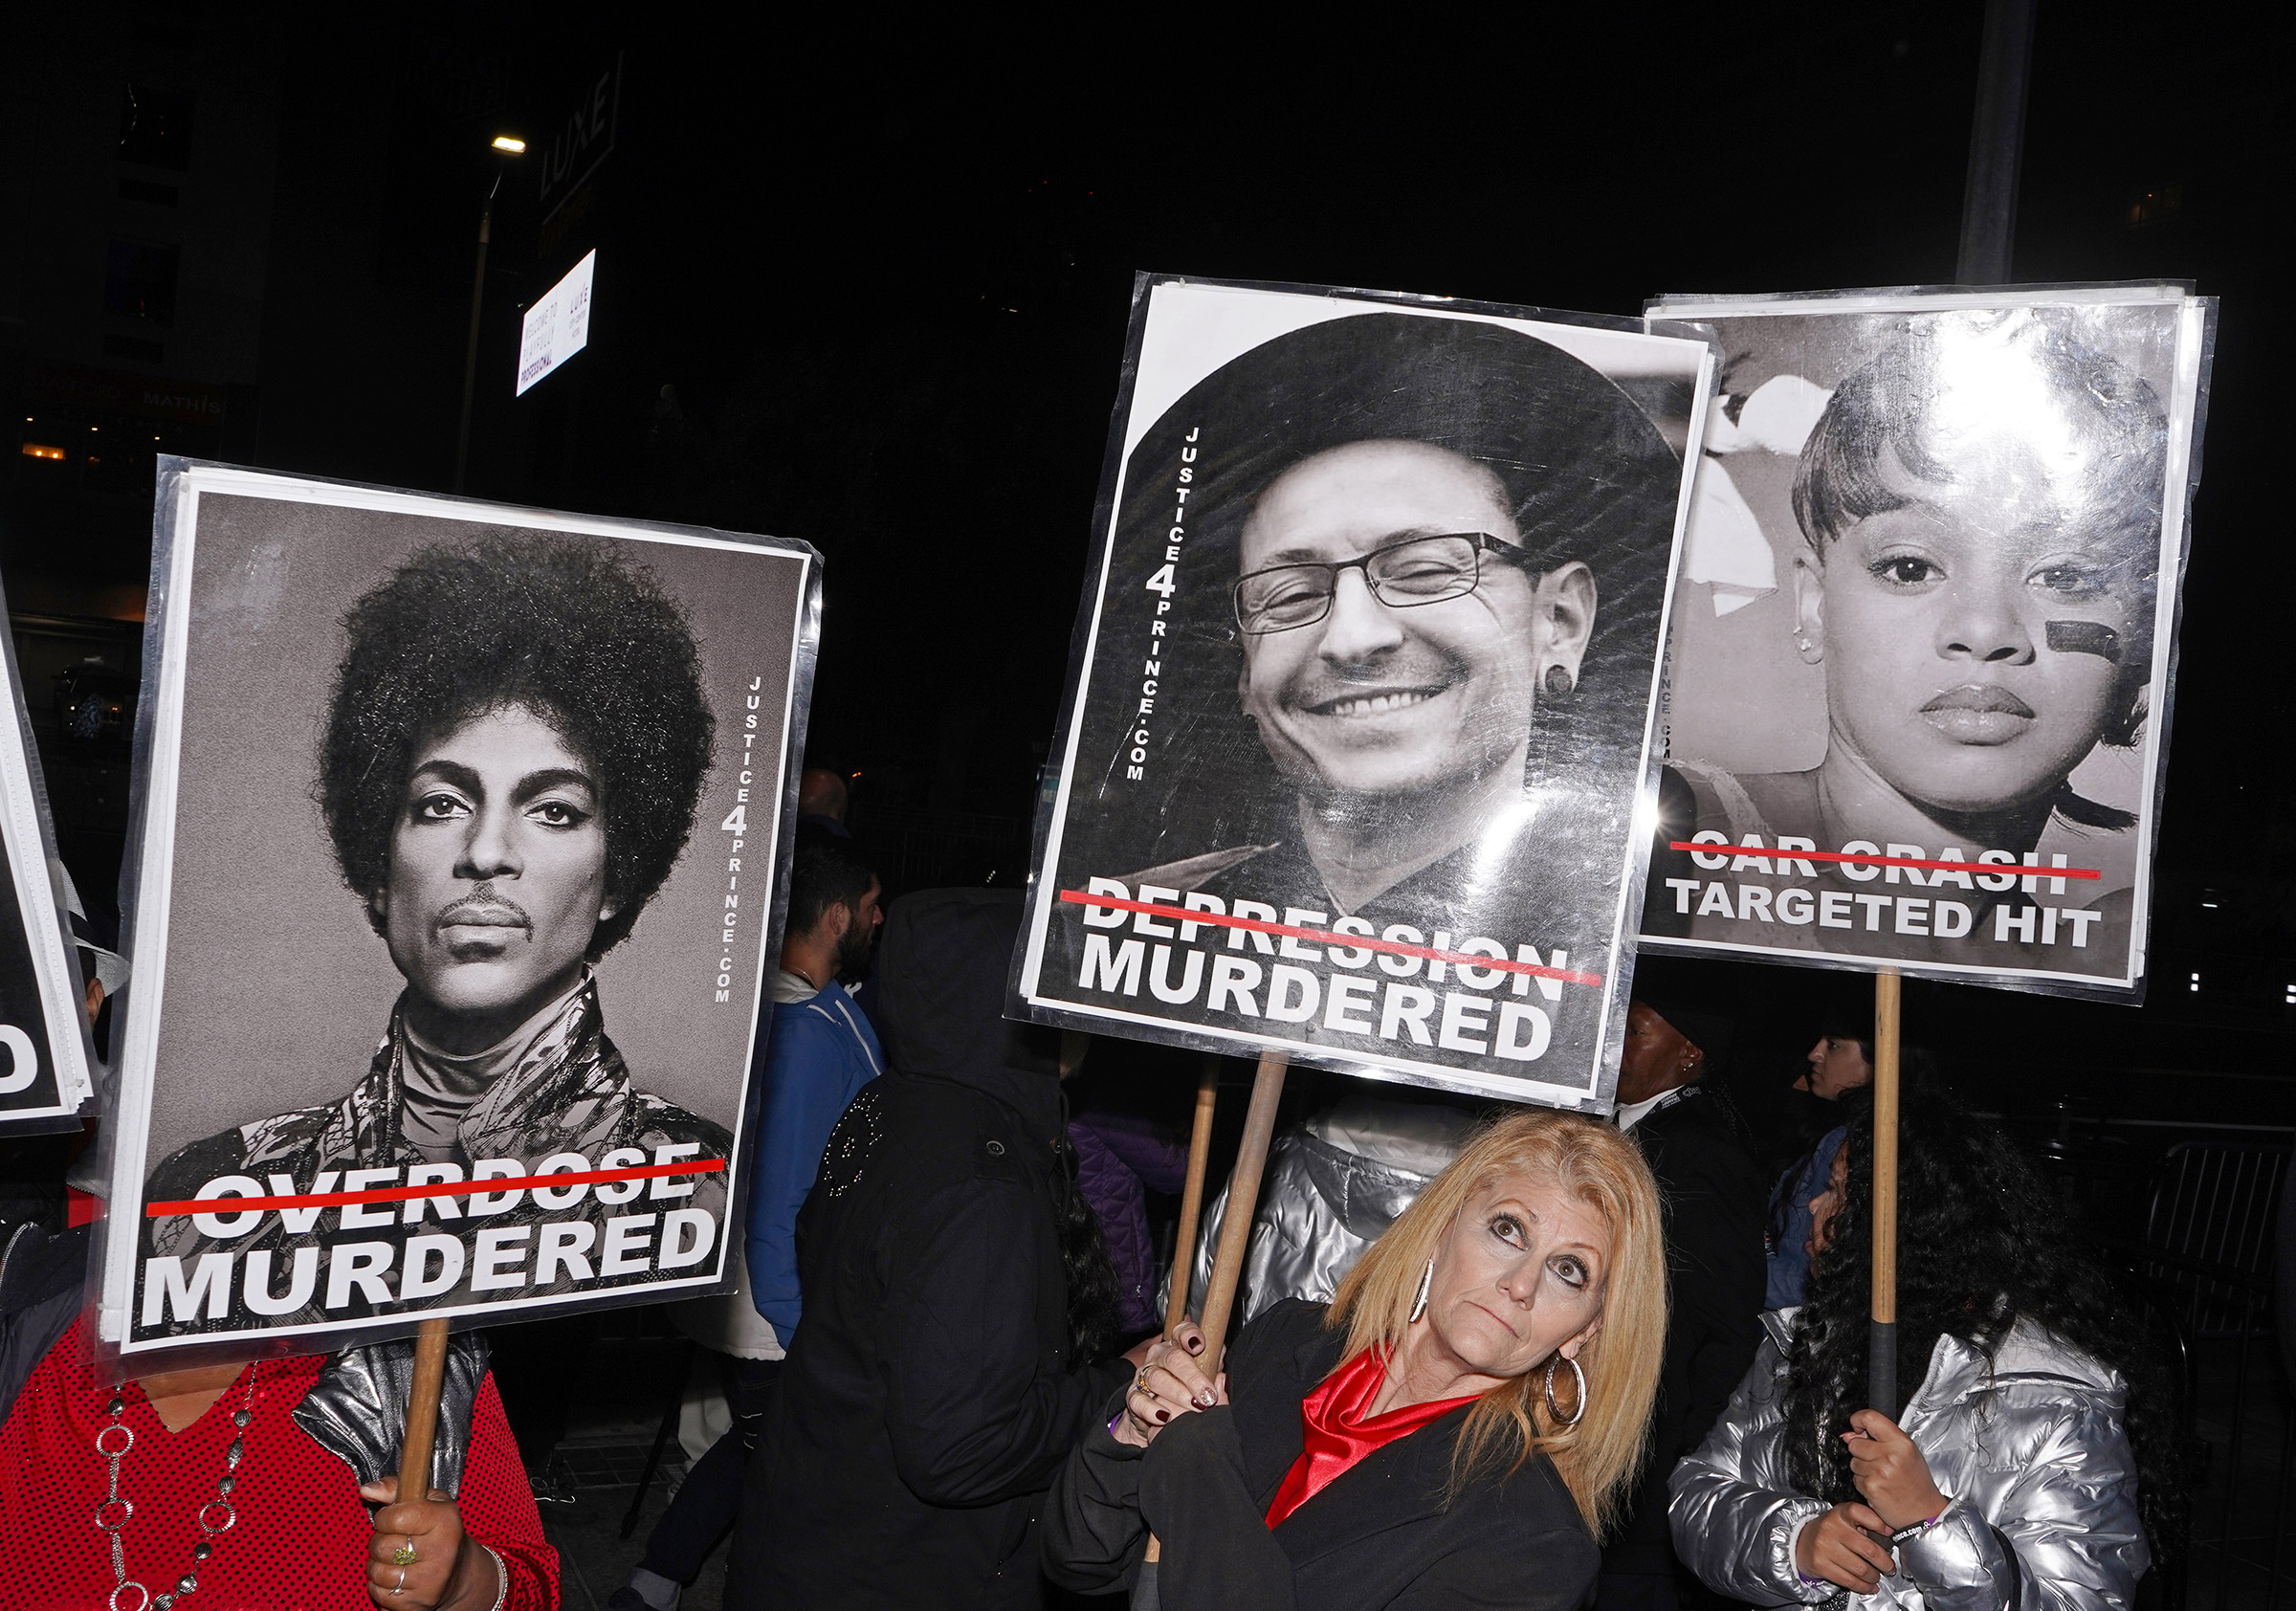 The group Justice 4 Prince protesting outside the Grammy's in Downtown Los Angeles, Jan. 26, 2020.